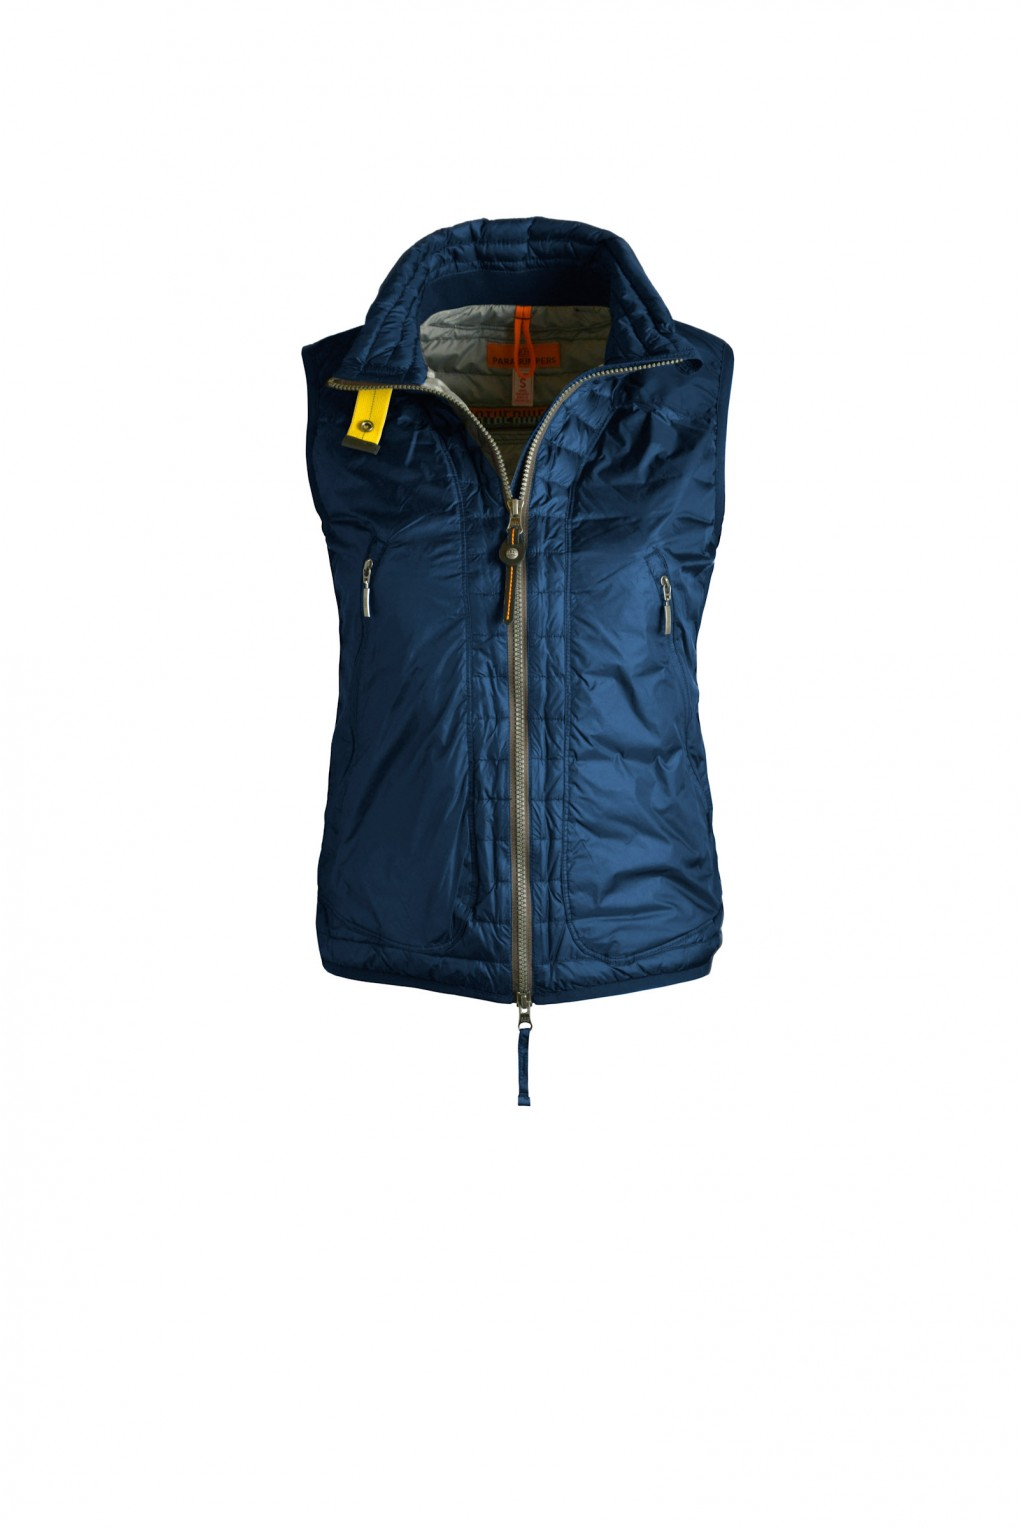 parajumpers BRUNA woman outerwear Ocean